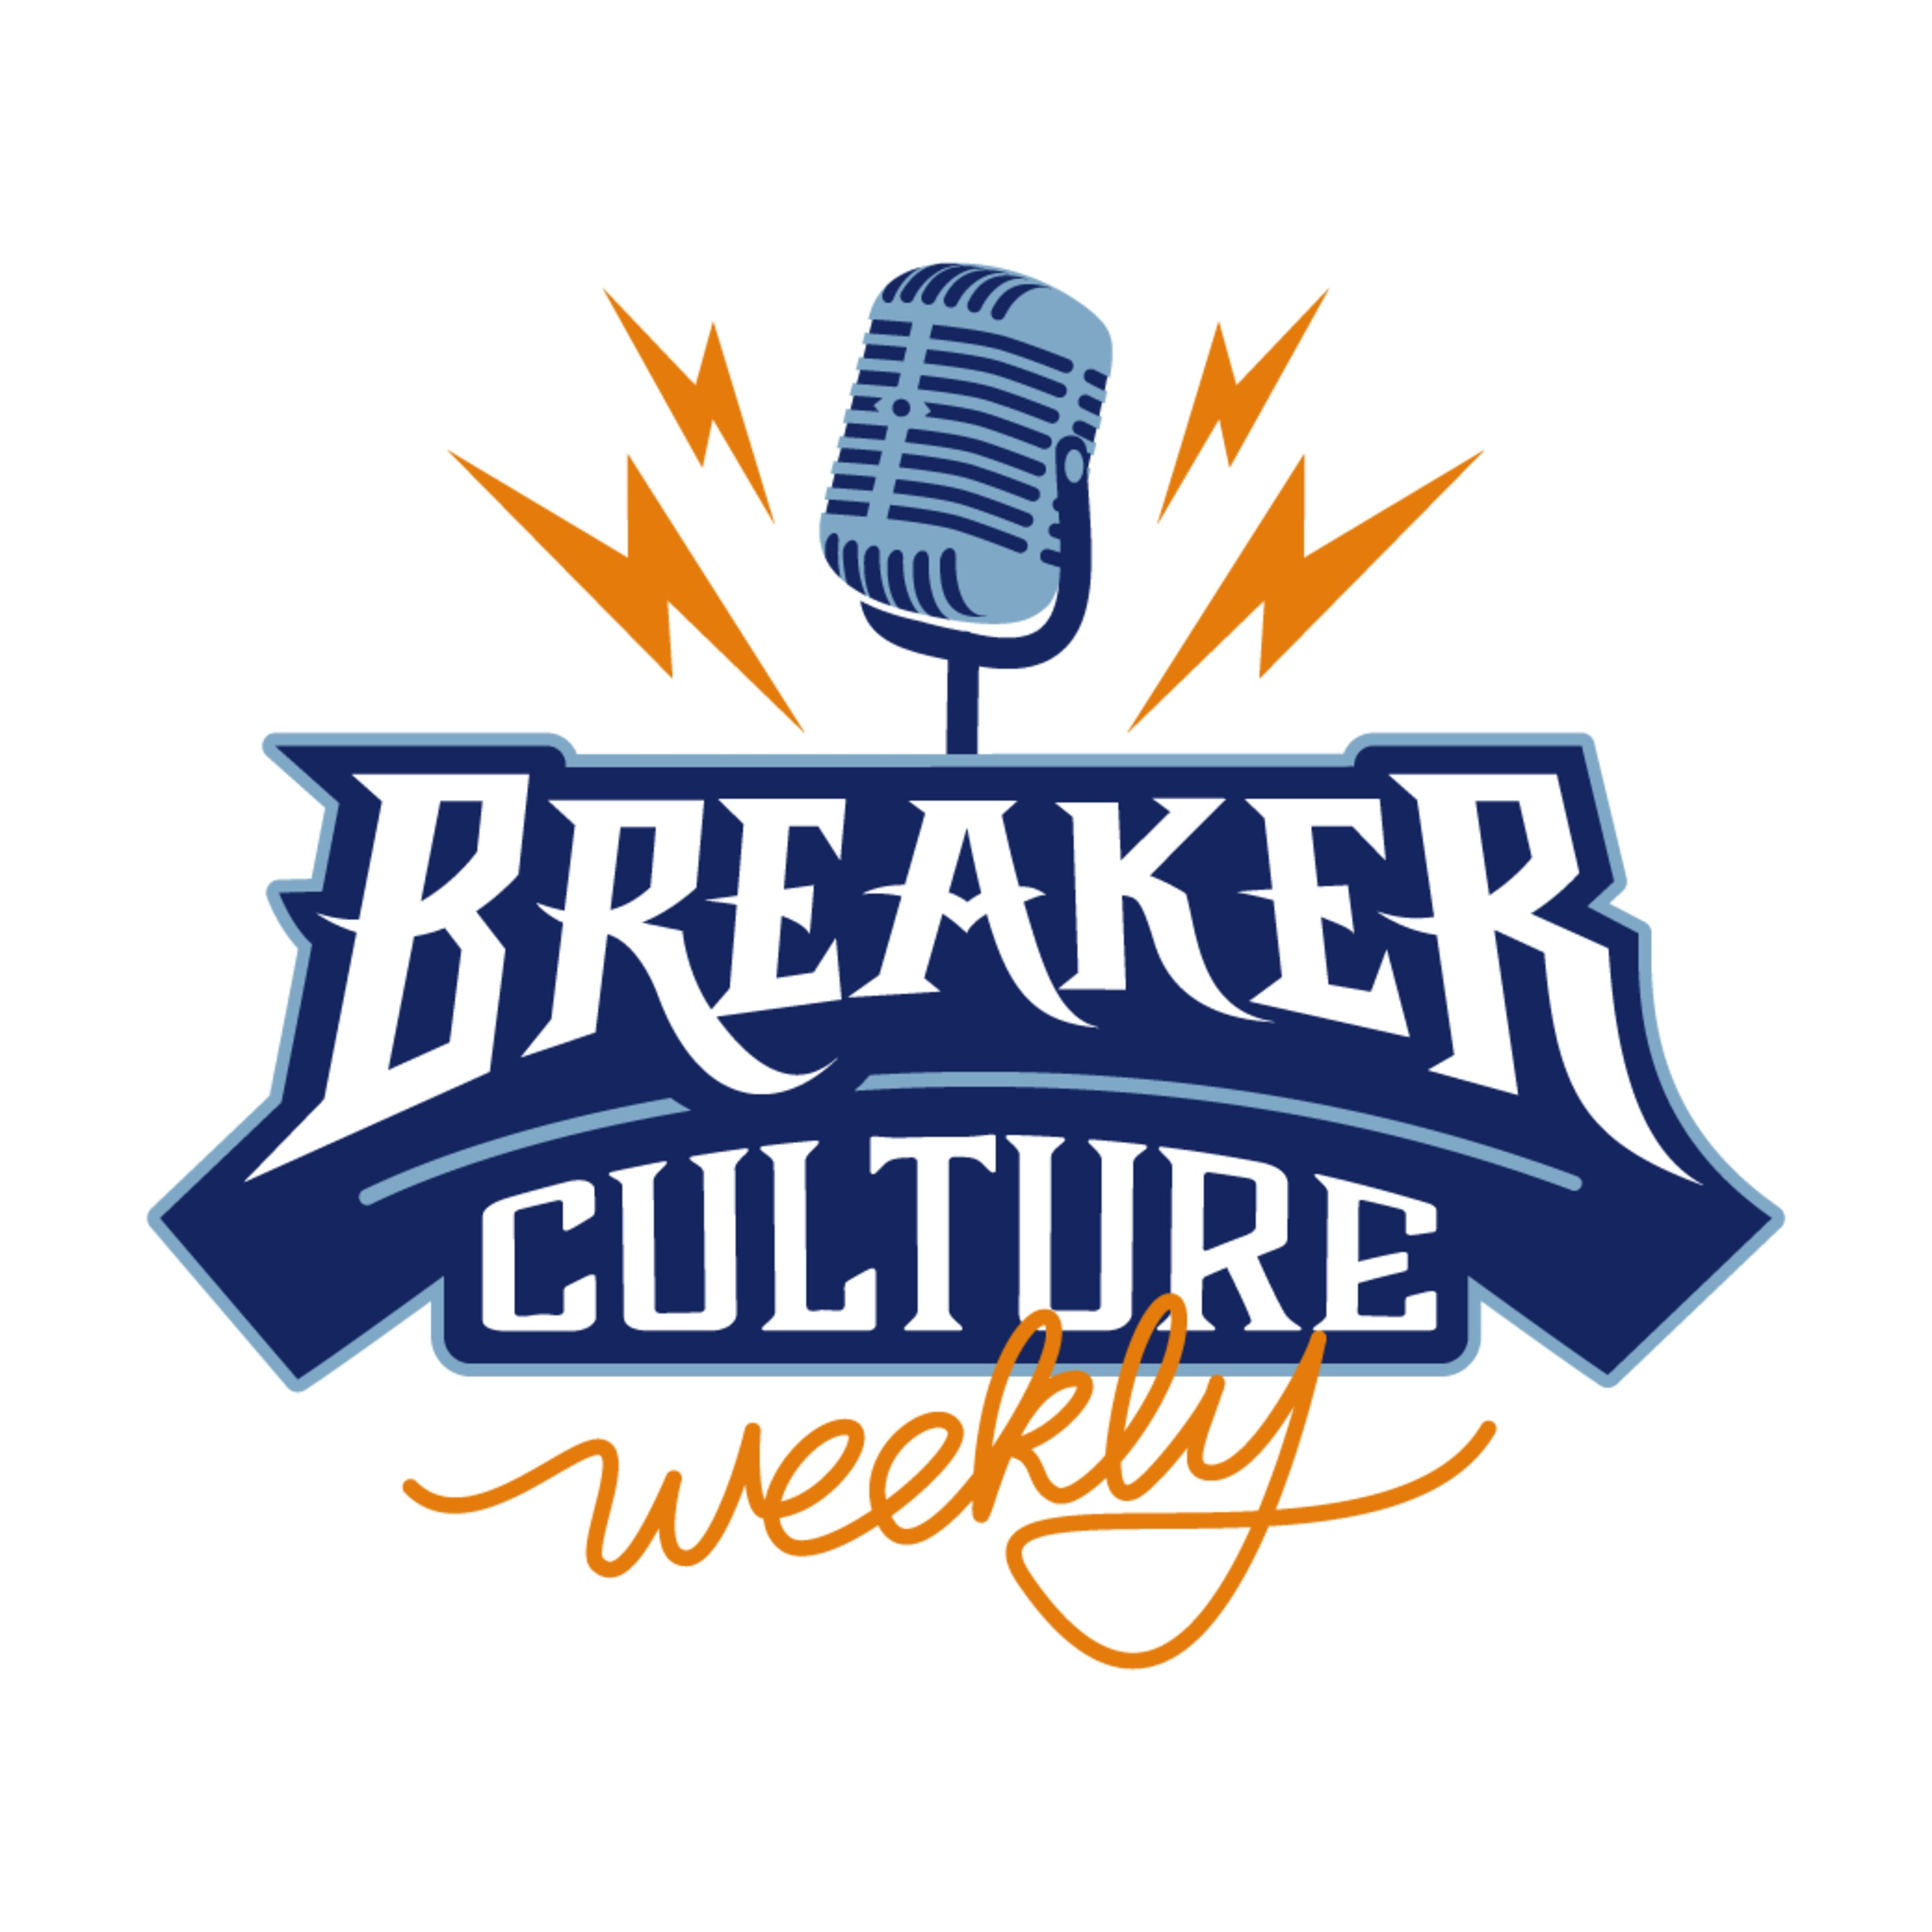 Breakerculture Podcast Podcast Podtail